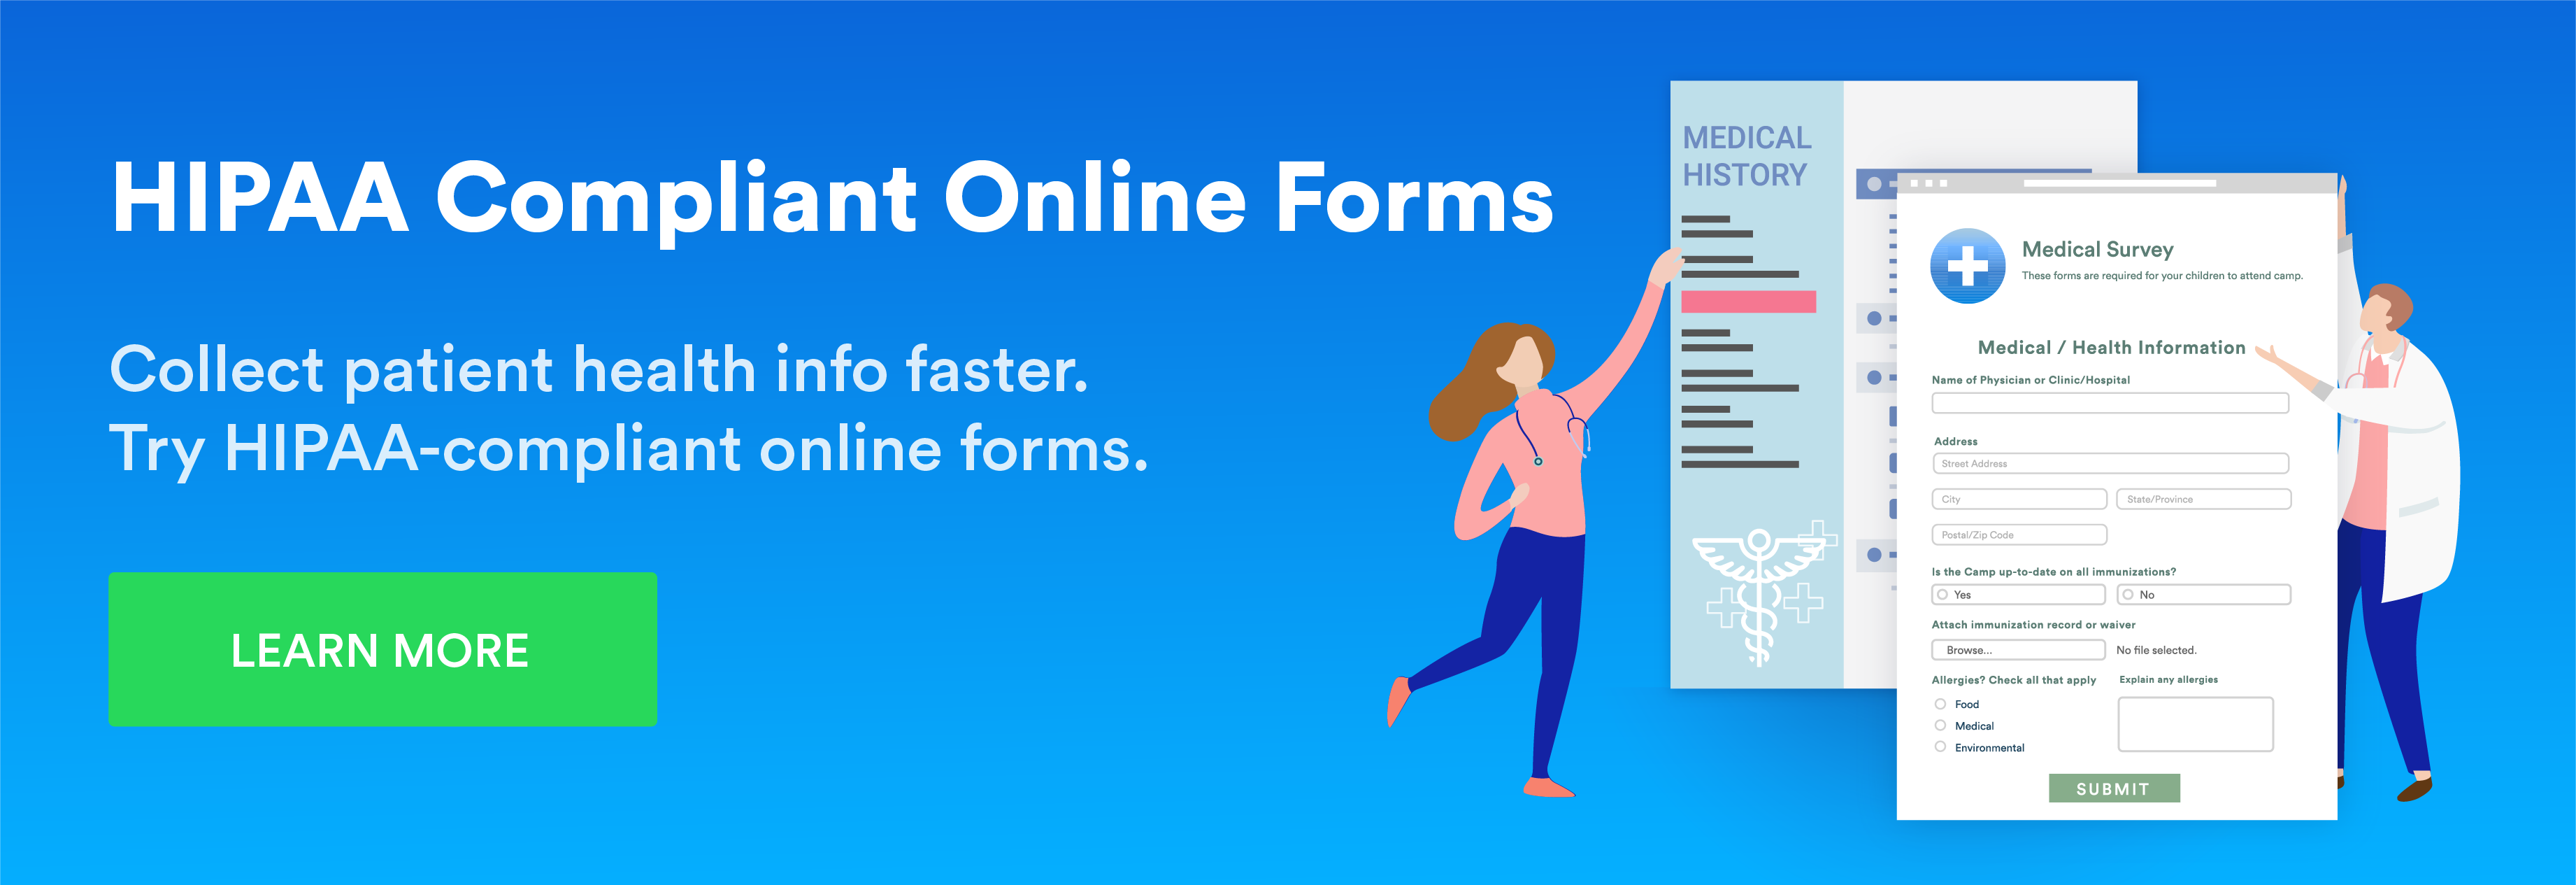 Collect patient health info faster. Try HIPAA-compliant online forms.